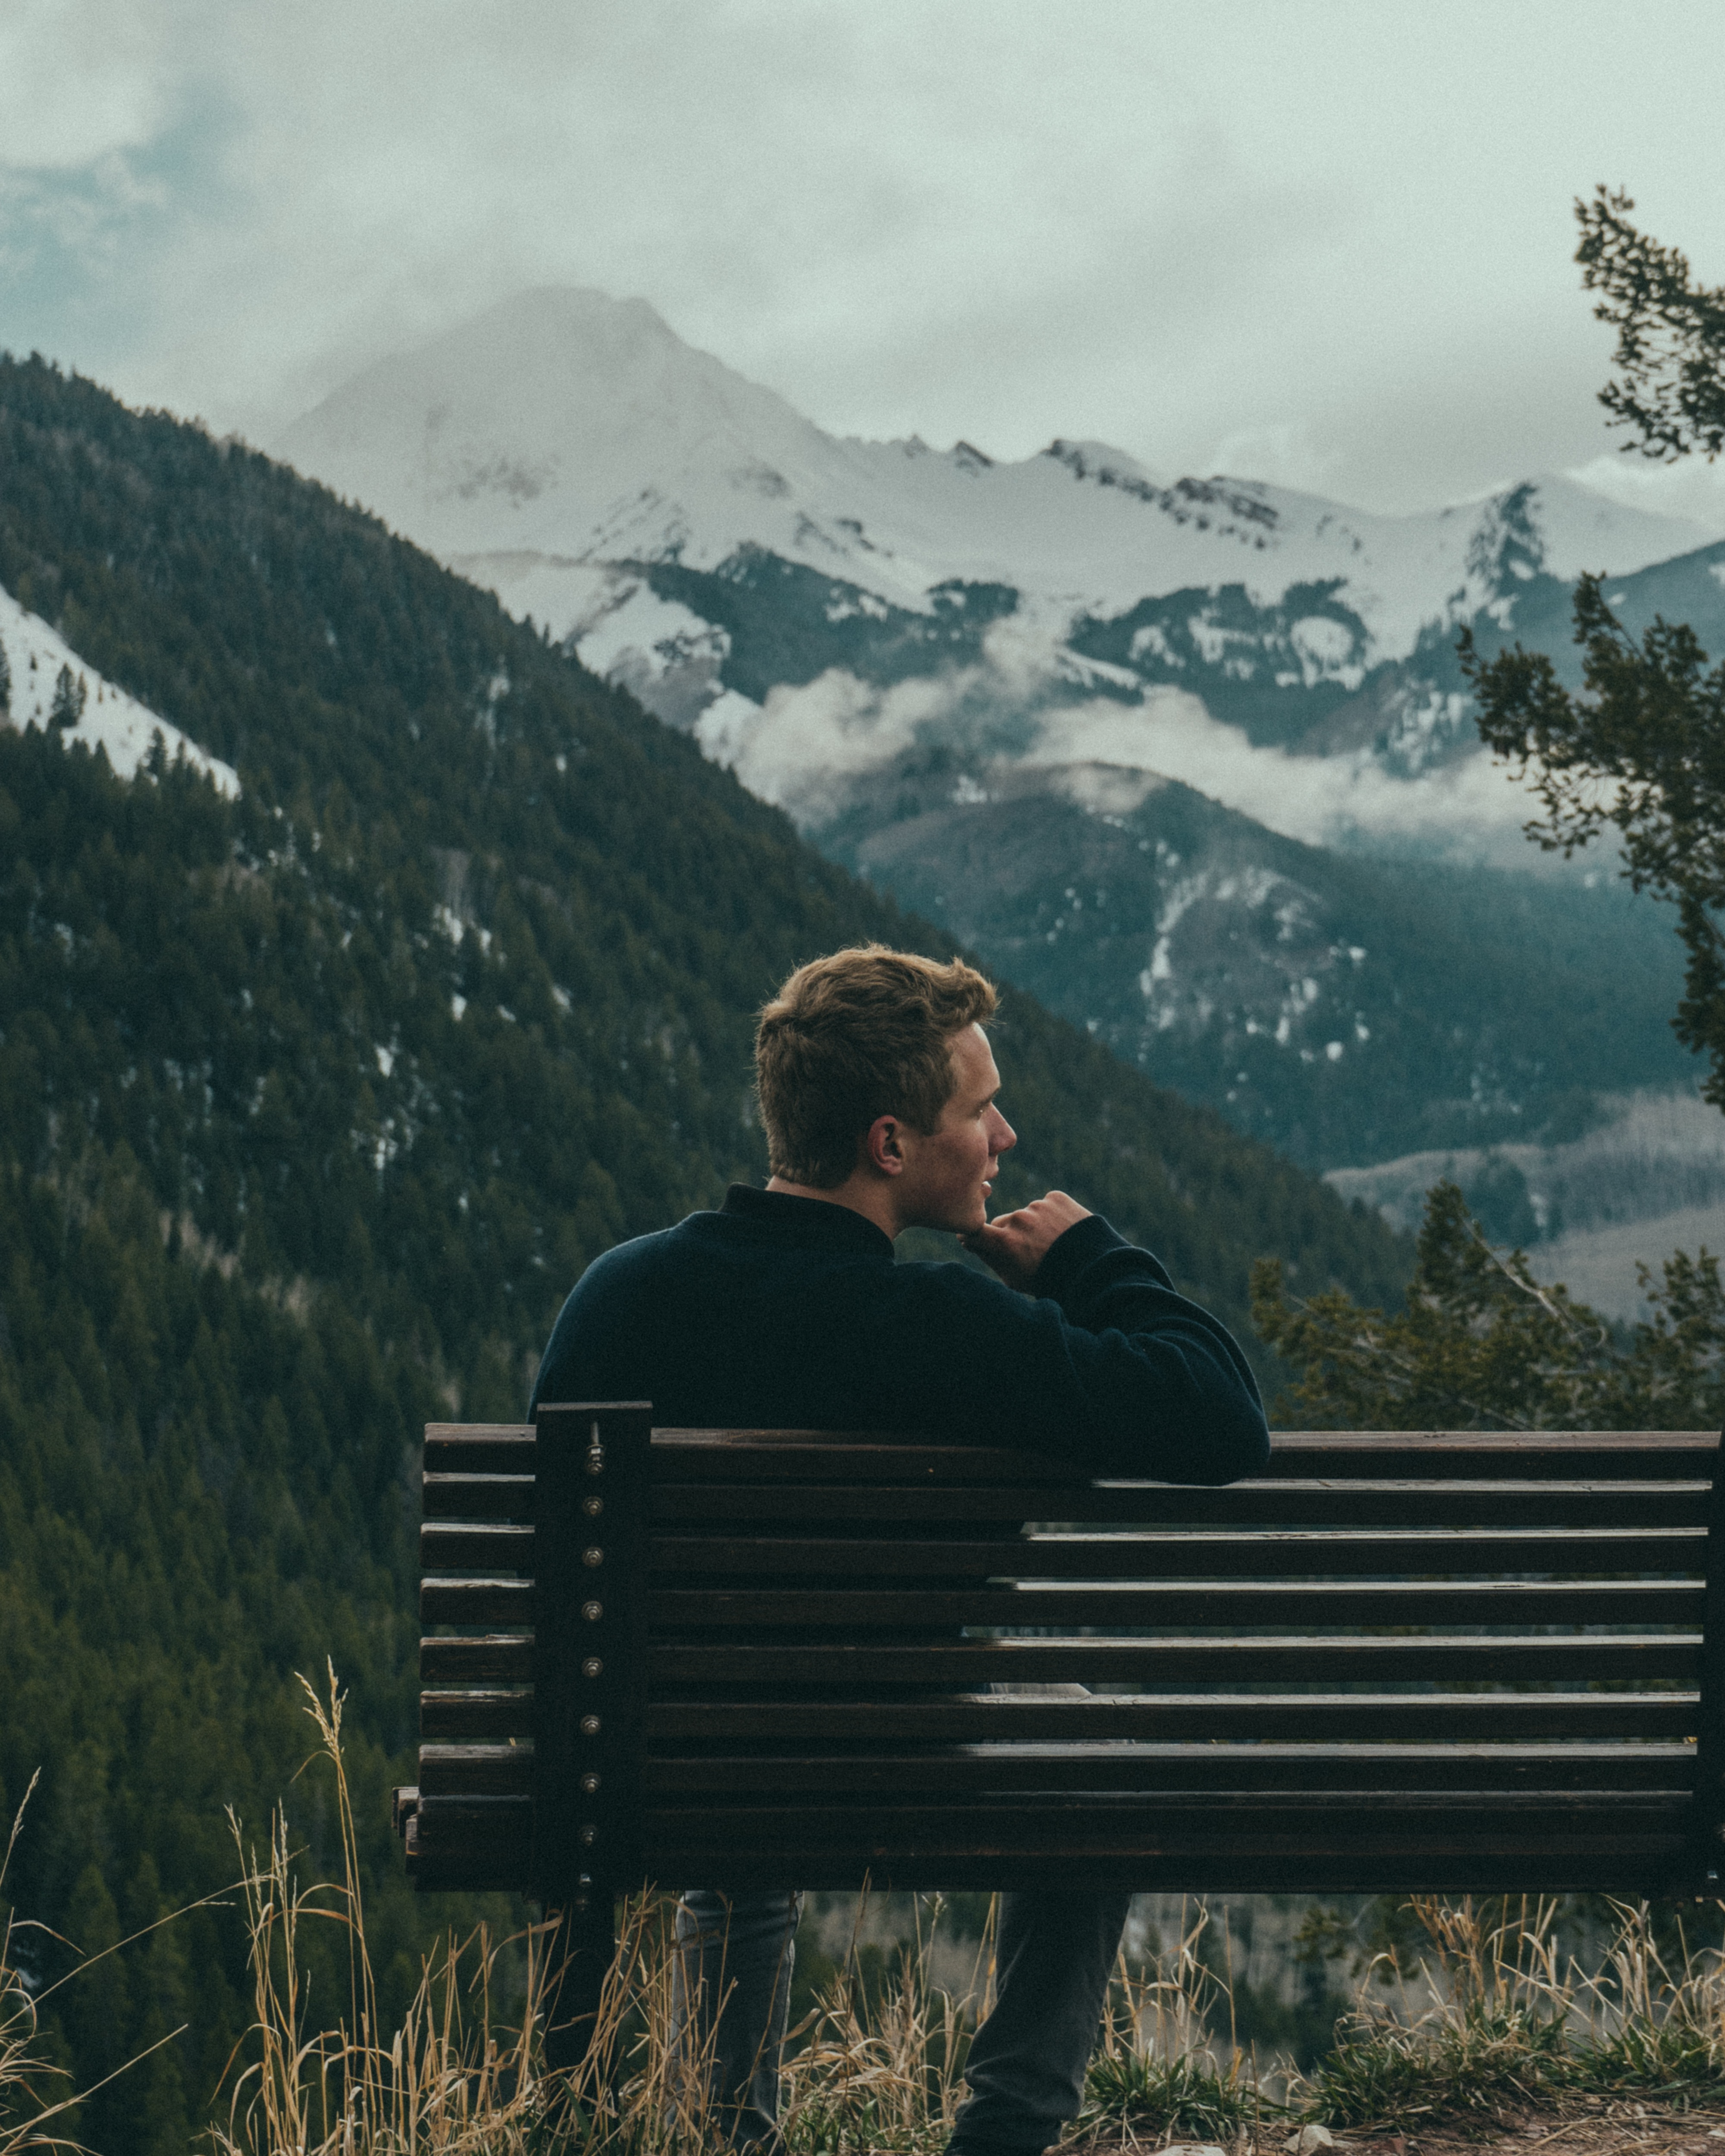 man sitting on bench and thinking